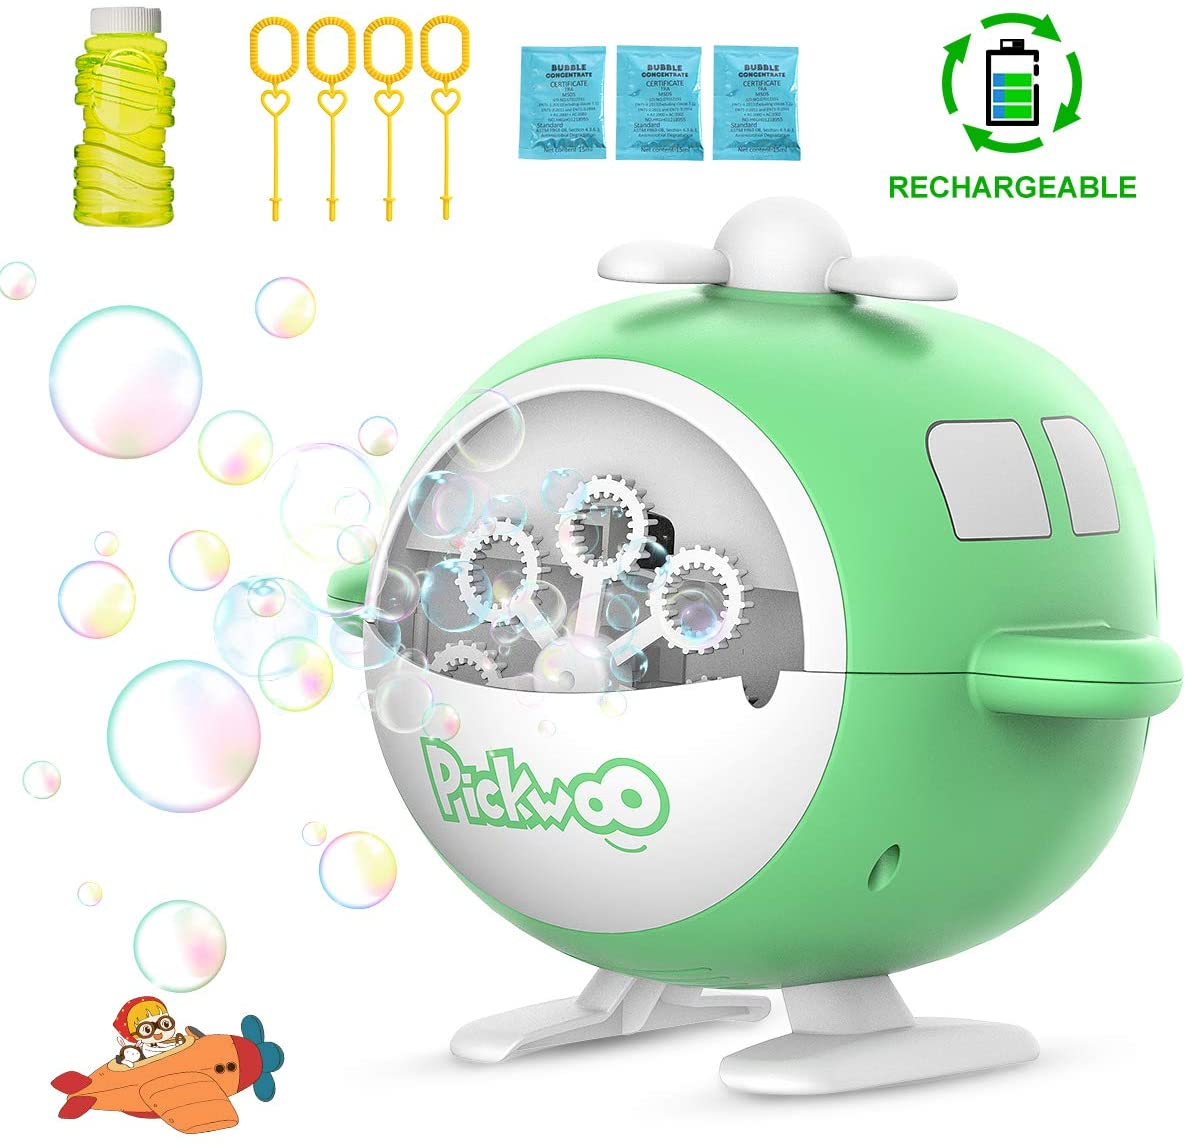 Pickwoo Bubble Machine, Automatic Bubble Maker Rechargeable Bubble Blower Machine 1000 Bubbles per Minute for Kid Toddlers Outdoor Indoor with 3 Bubbles Solutions,High Output for Parties Birthdays